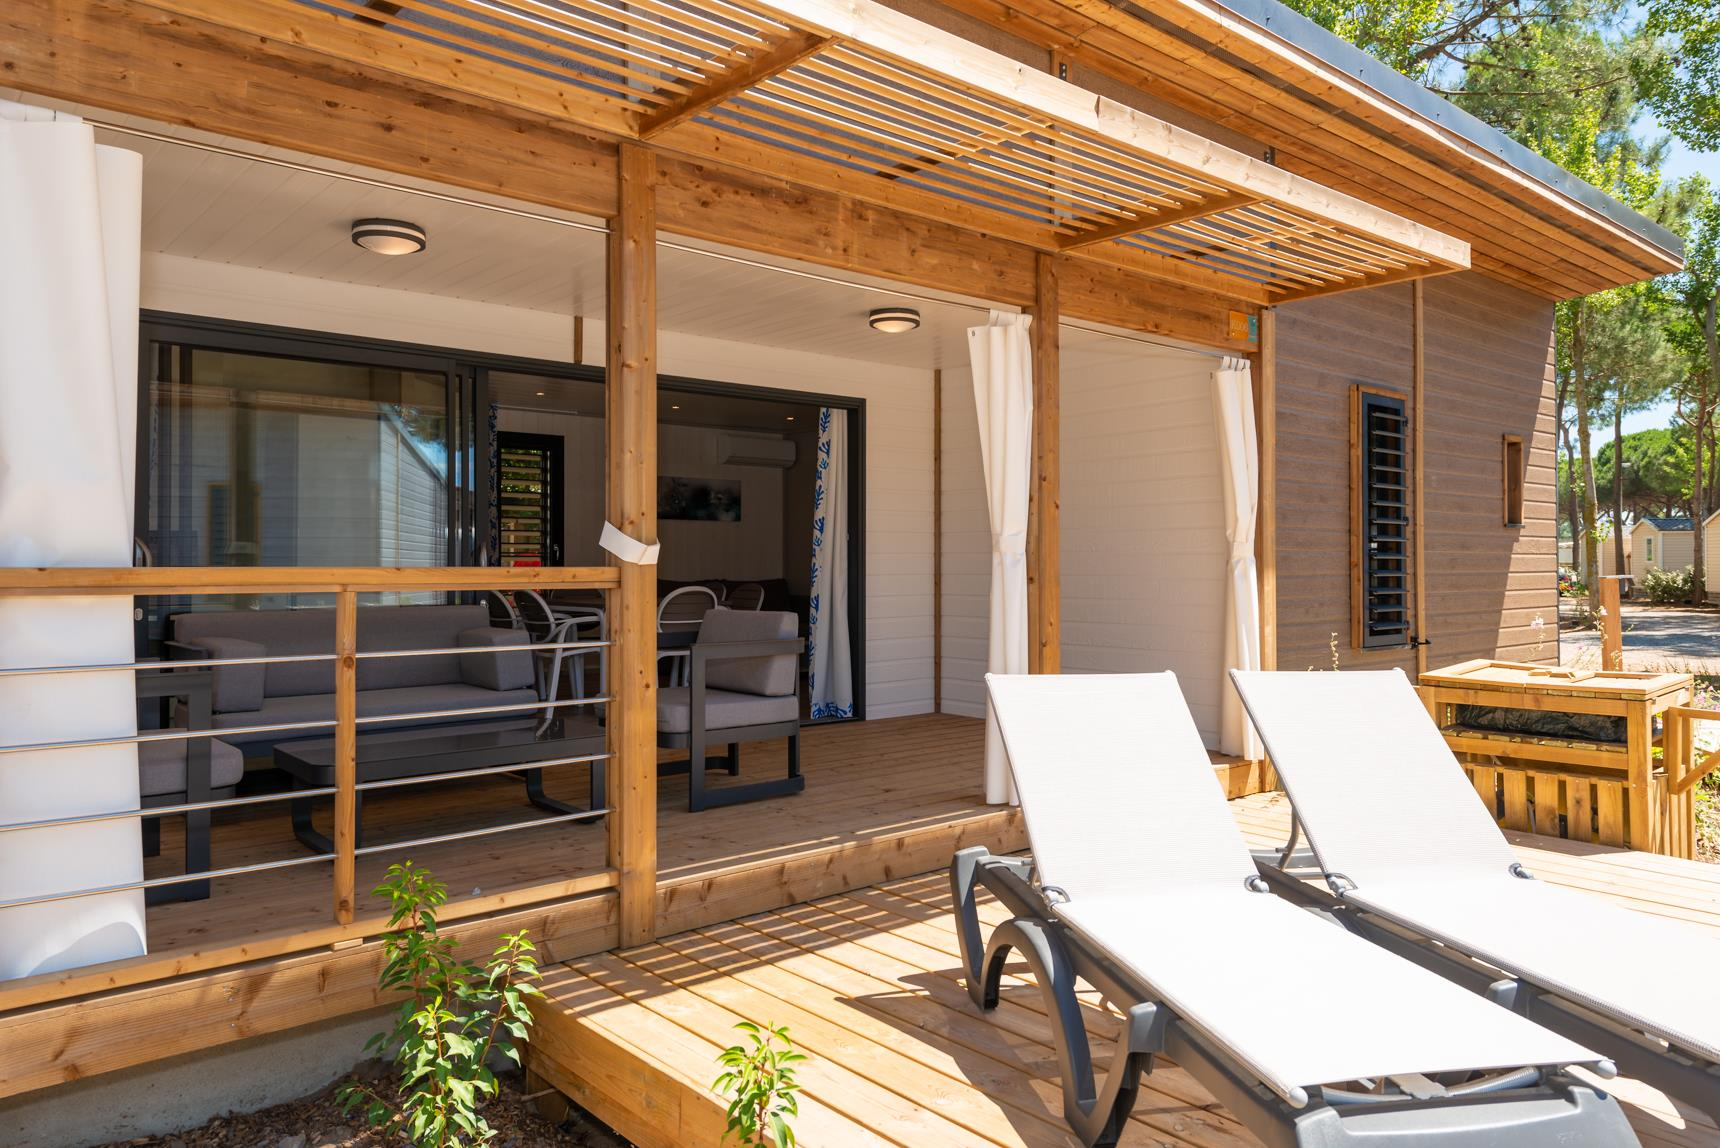 COTTAGE SUP 2 chambres / 2 SDB